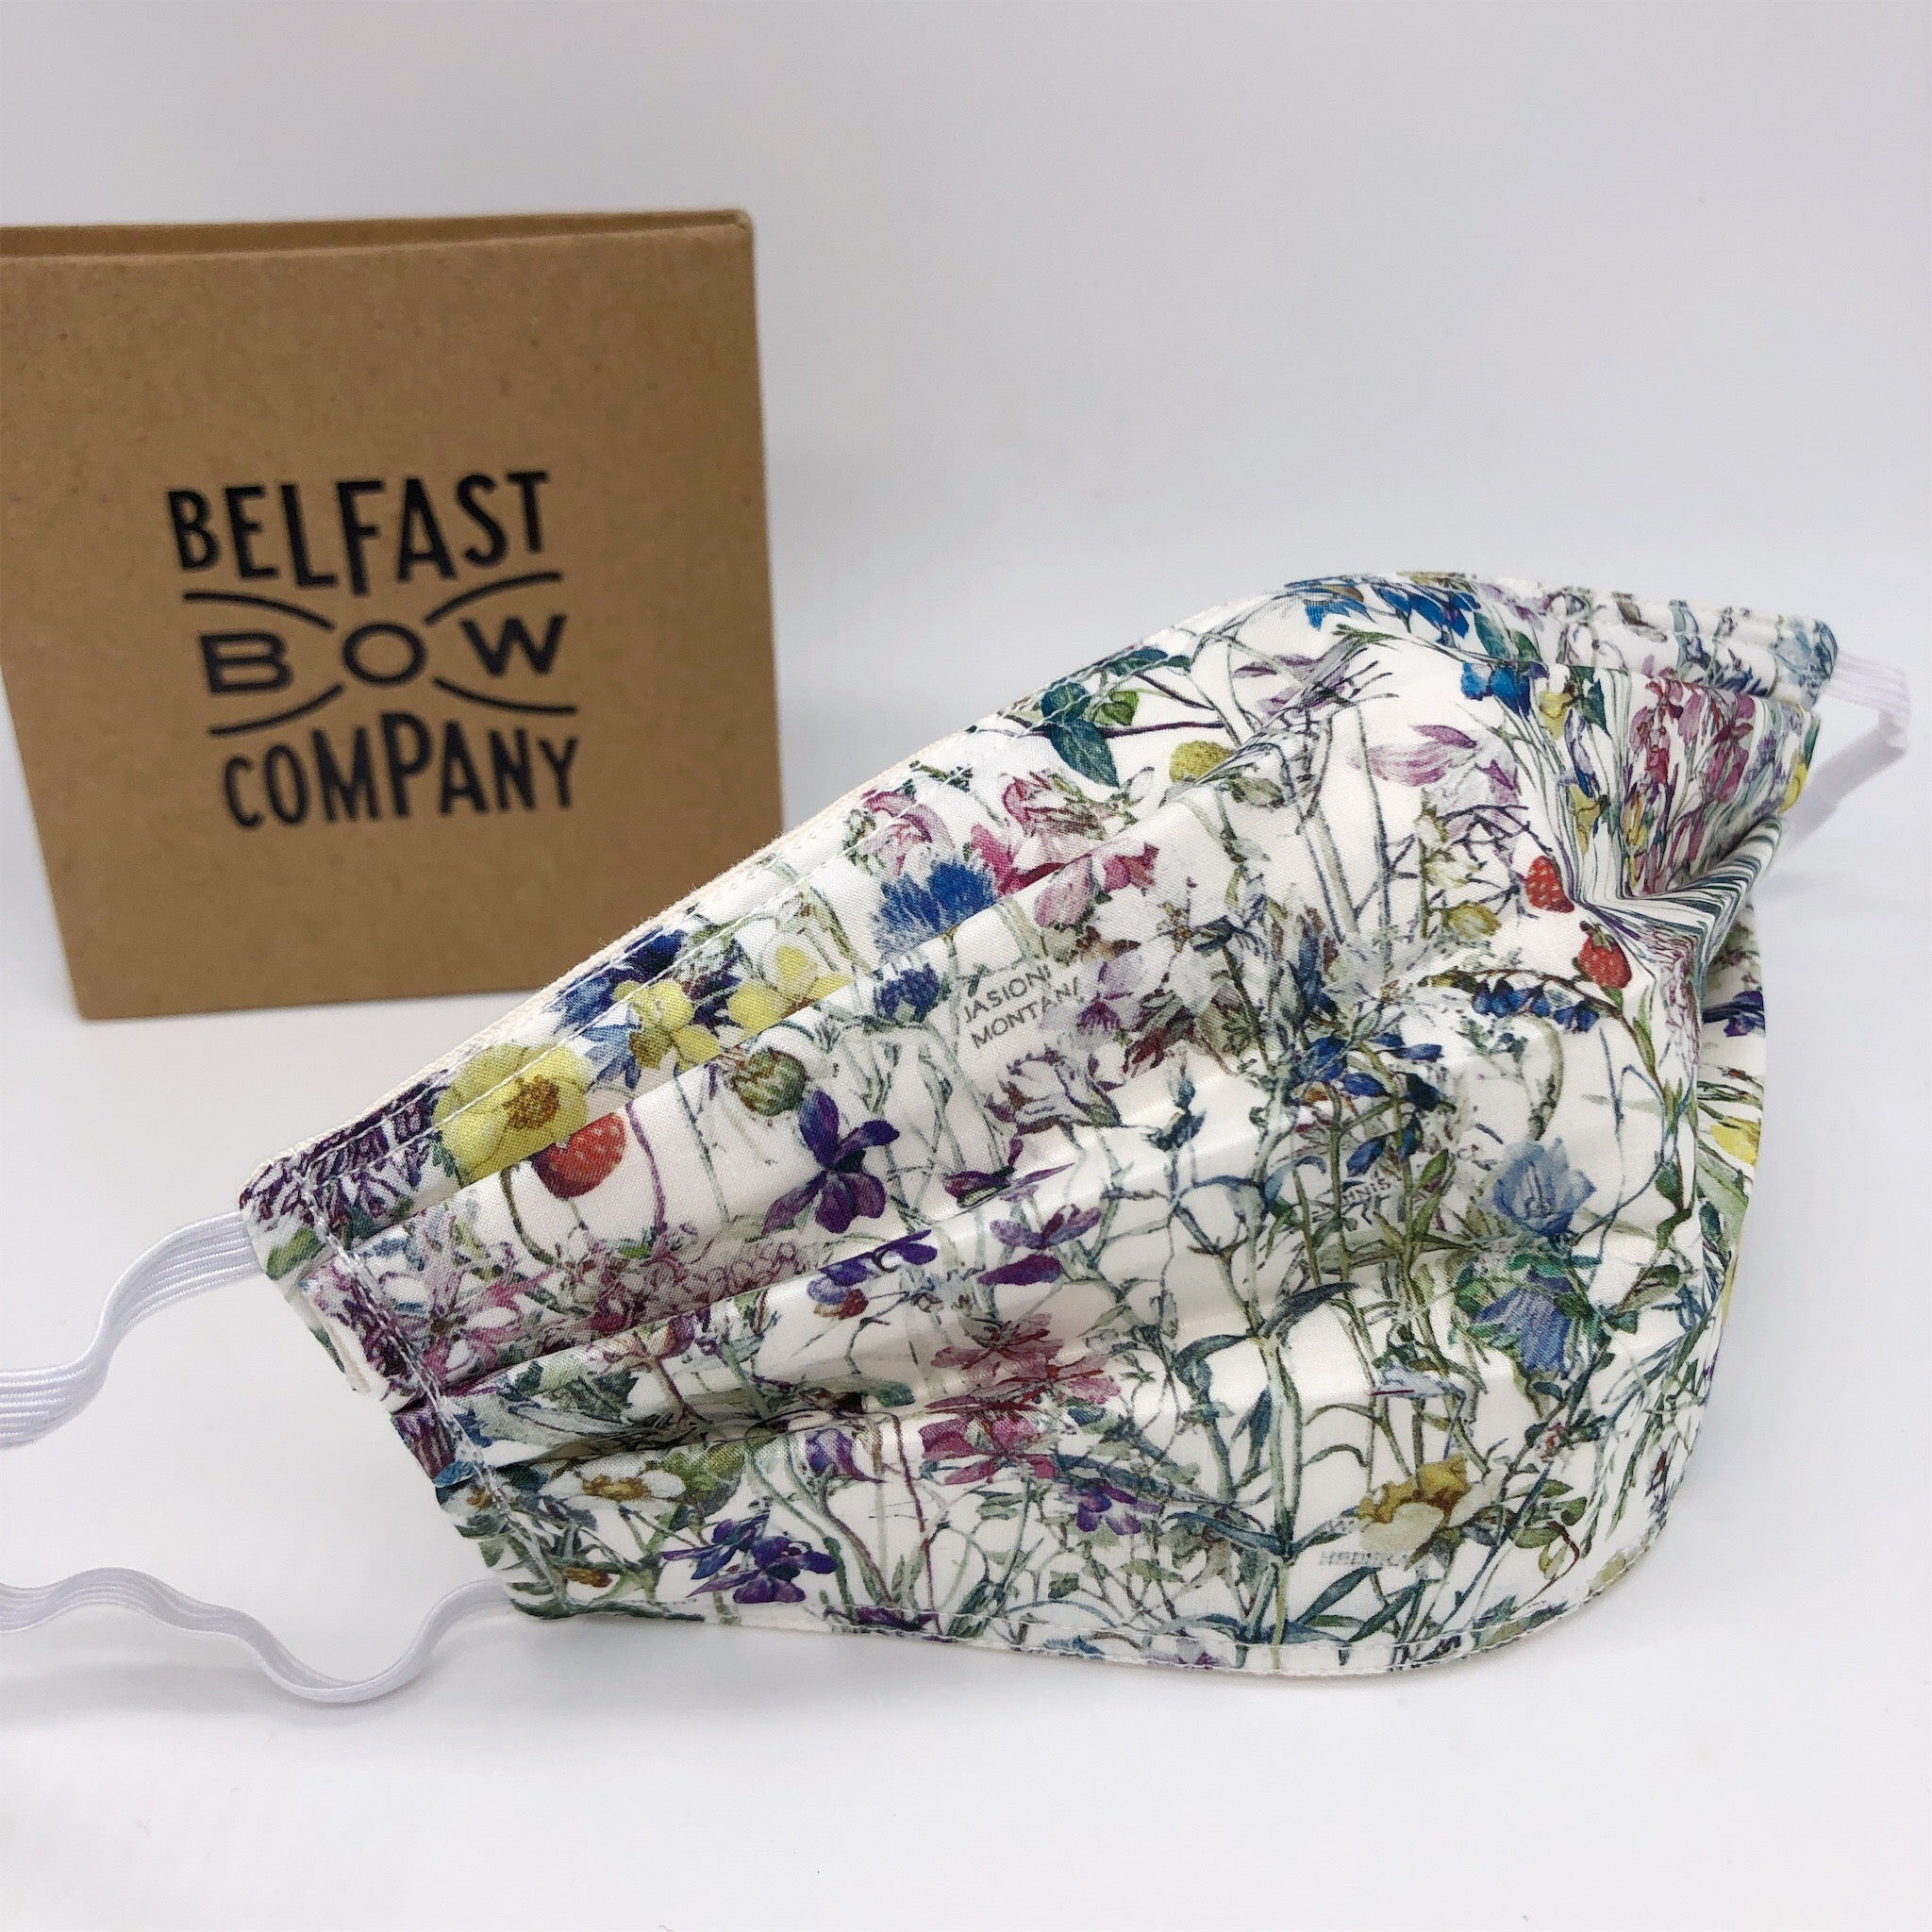 Liberty of London Face Mask in Wildflowers by the Belfast Bow Company